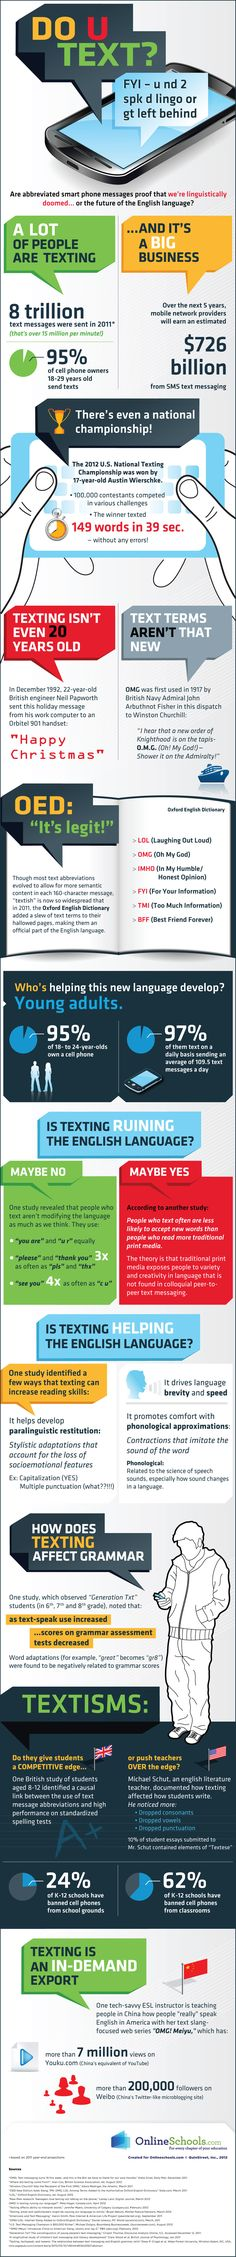 Text Talk infographic - to prompt discussion about cell phones, grammar, and formal/informal usage.